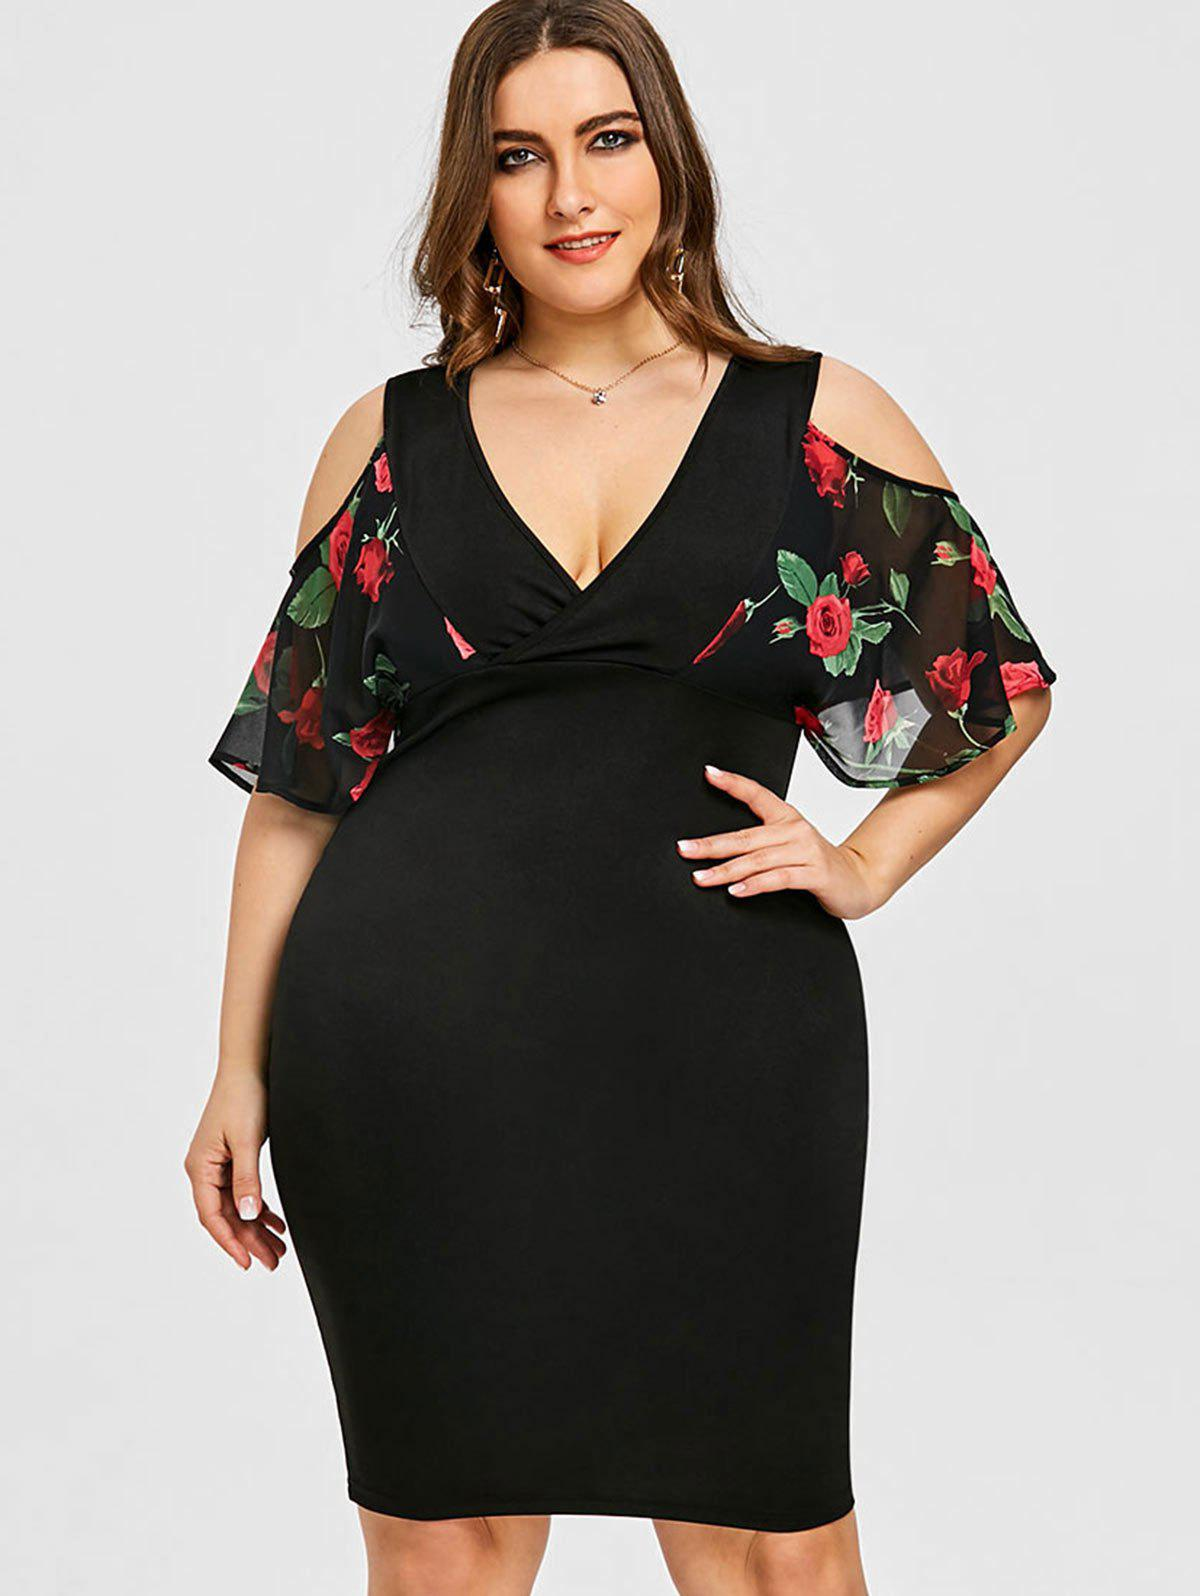 48% OFF] Cold Shoulder Floral Print Plus Size Bodycon Dress | Rosegal